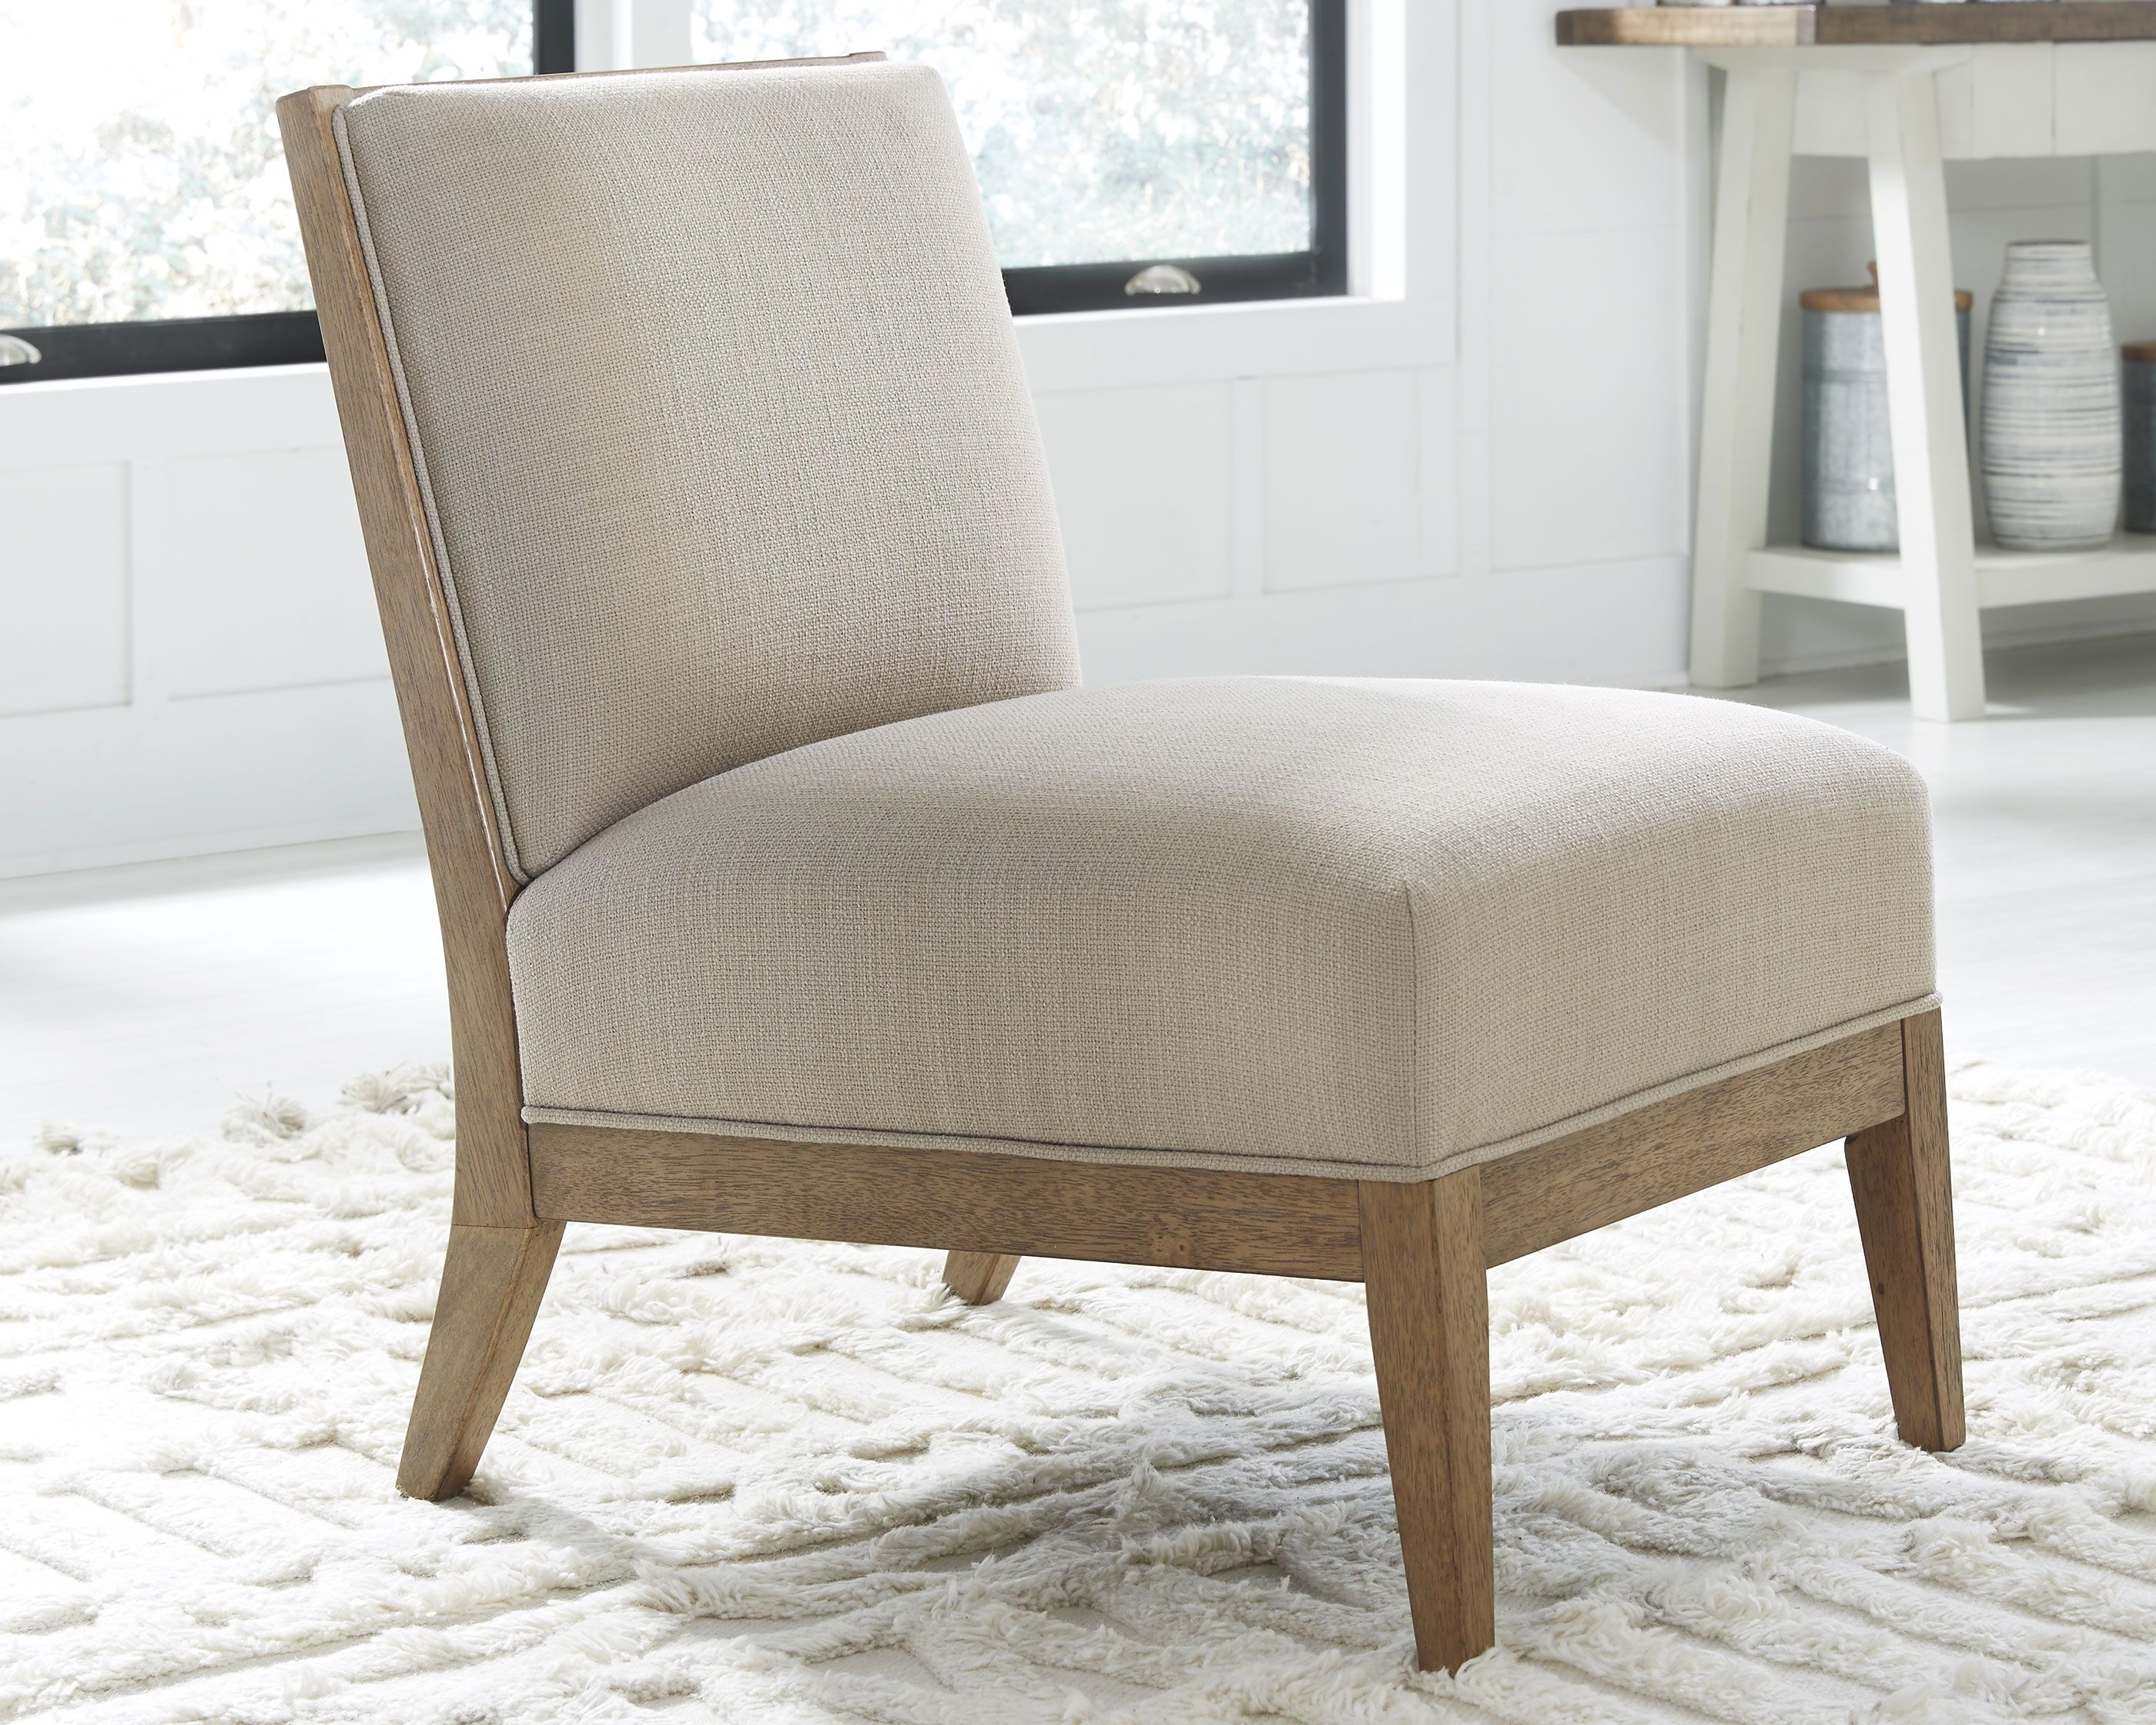 Novelda Accent Chair Neutral Accent Chairs Chair Chairs For Sale